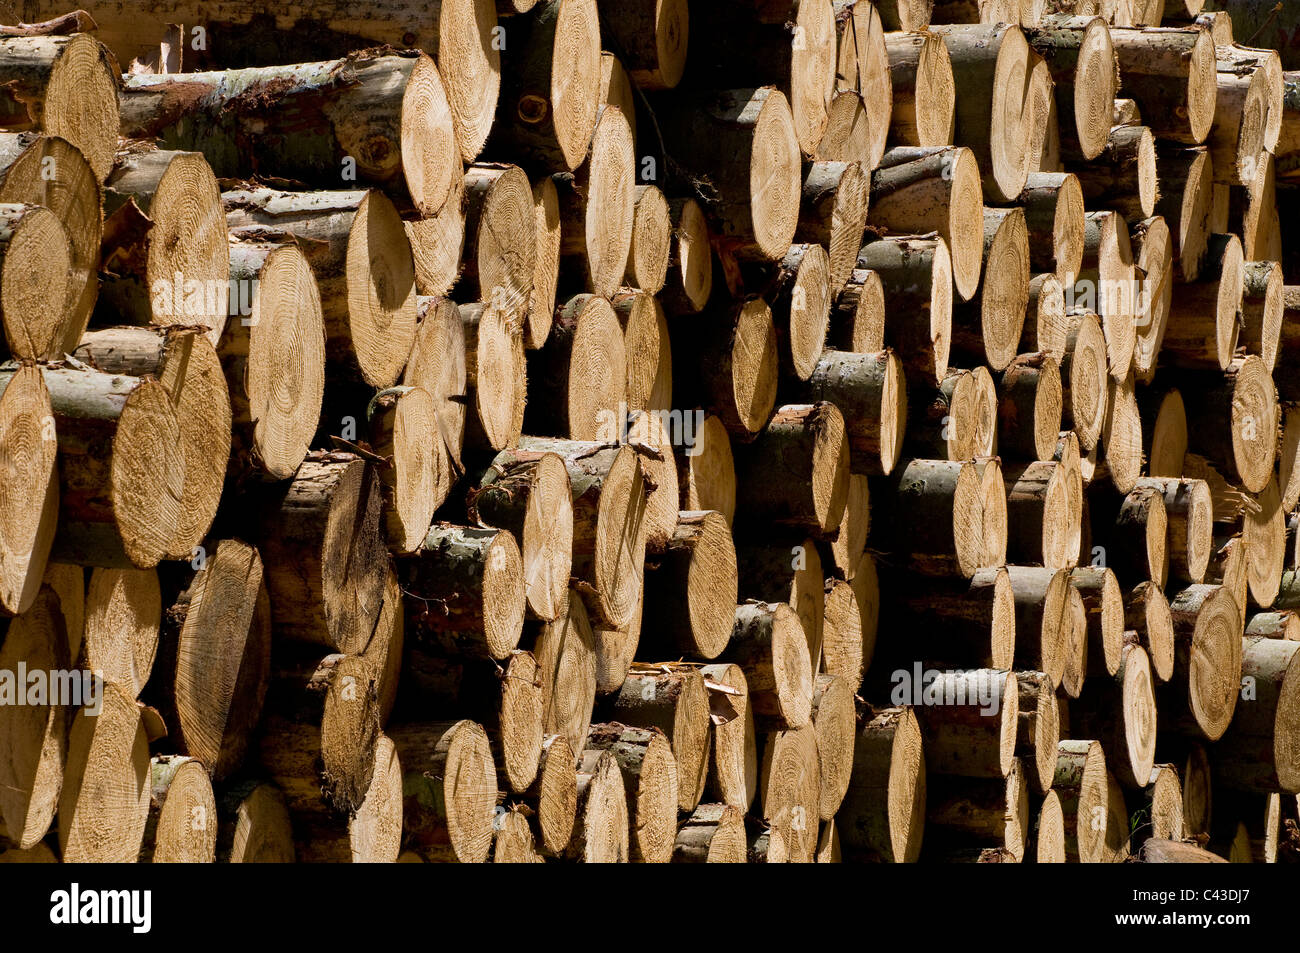 pile of conifer tree trunks - Stock Image